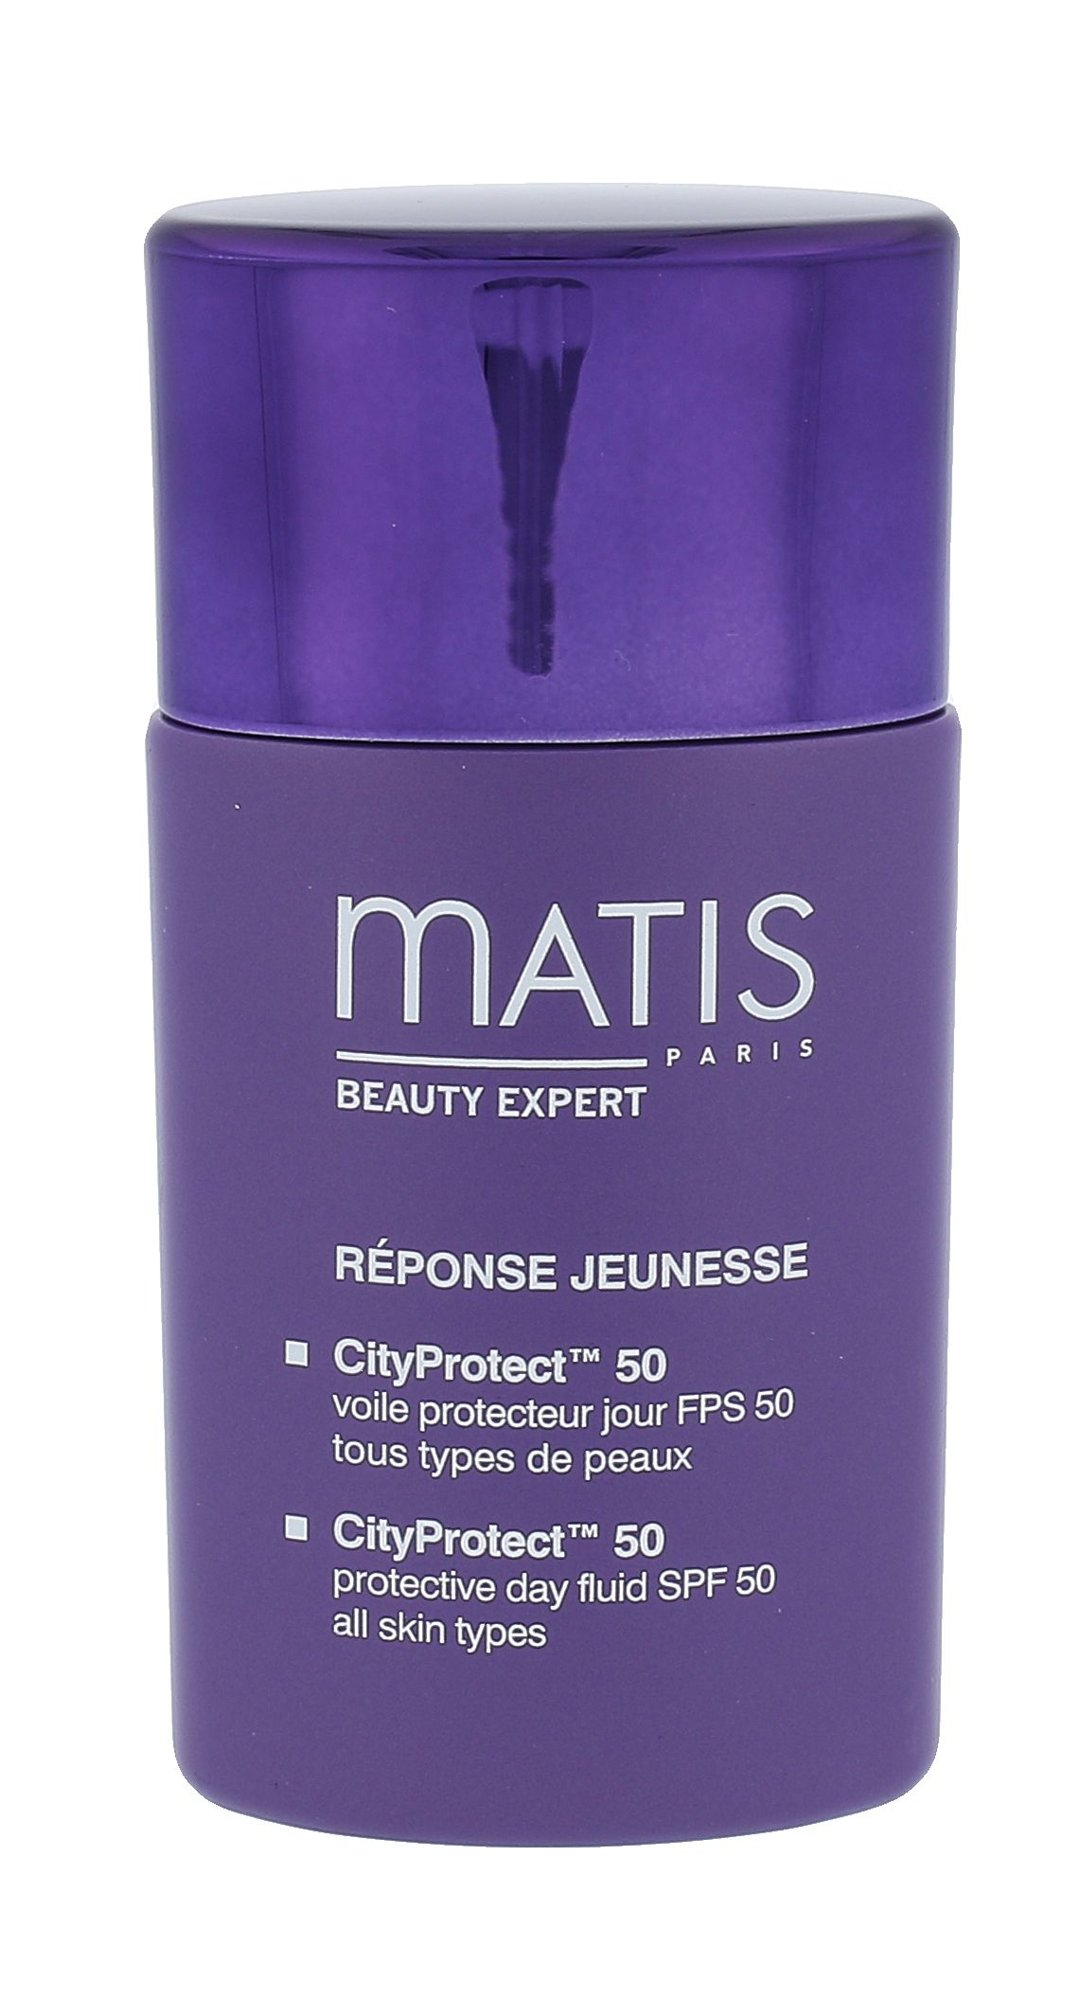 Matis Réponse Jeunesse Cosmetic 30ml  CityProtect 50 Day Fluid SPF50